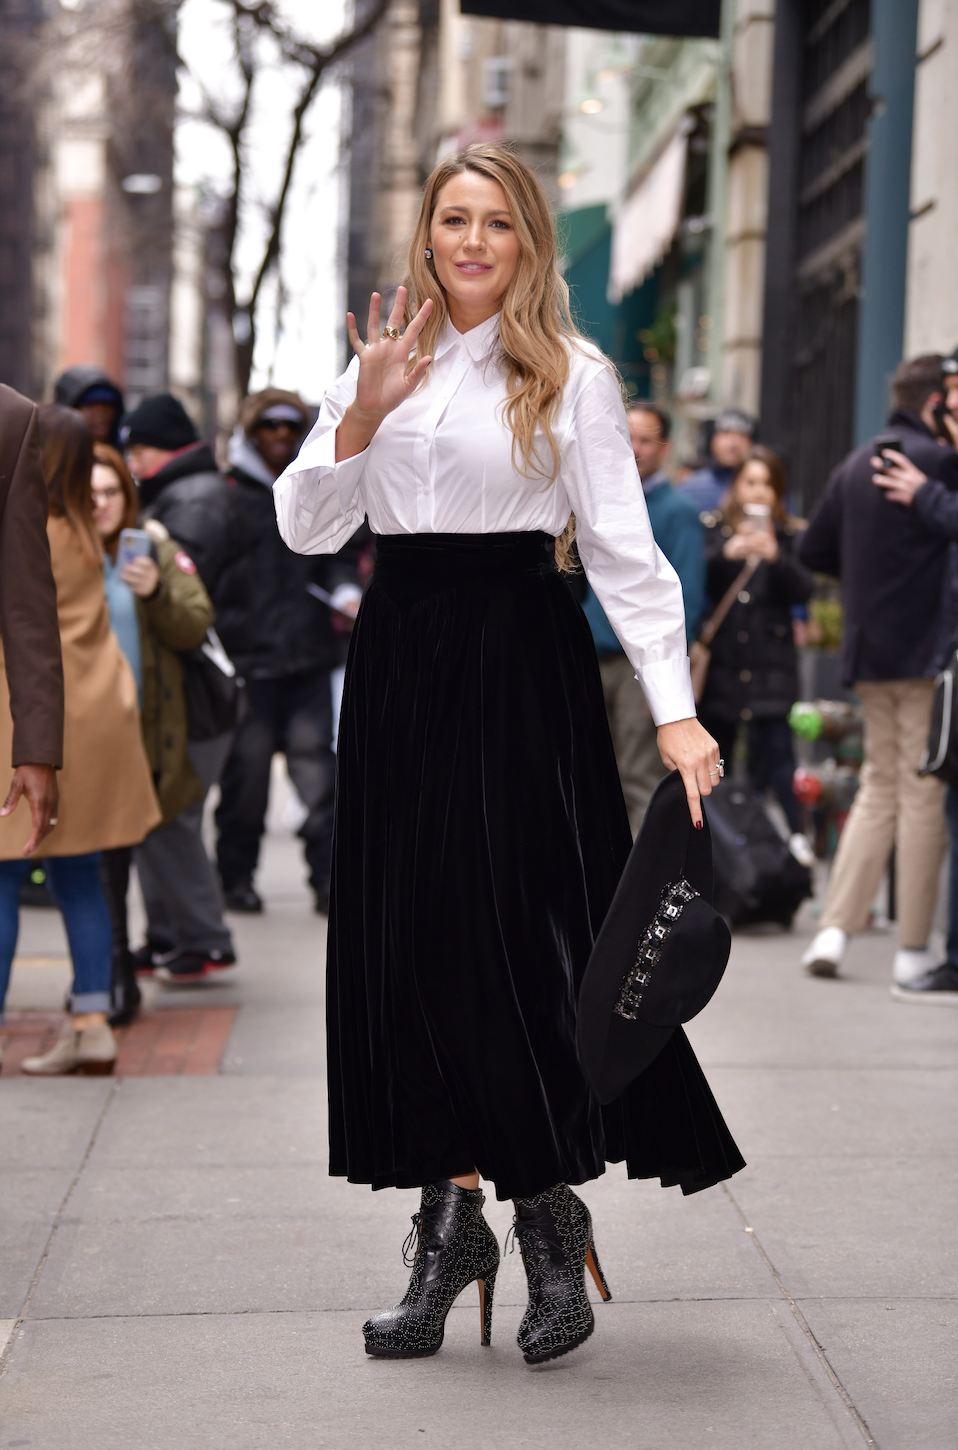 Blake Lively seen on the streets of Manhattan on January 28, 2020, in New York City